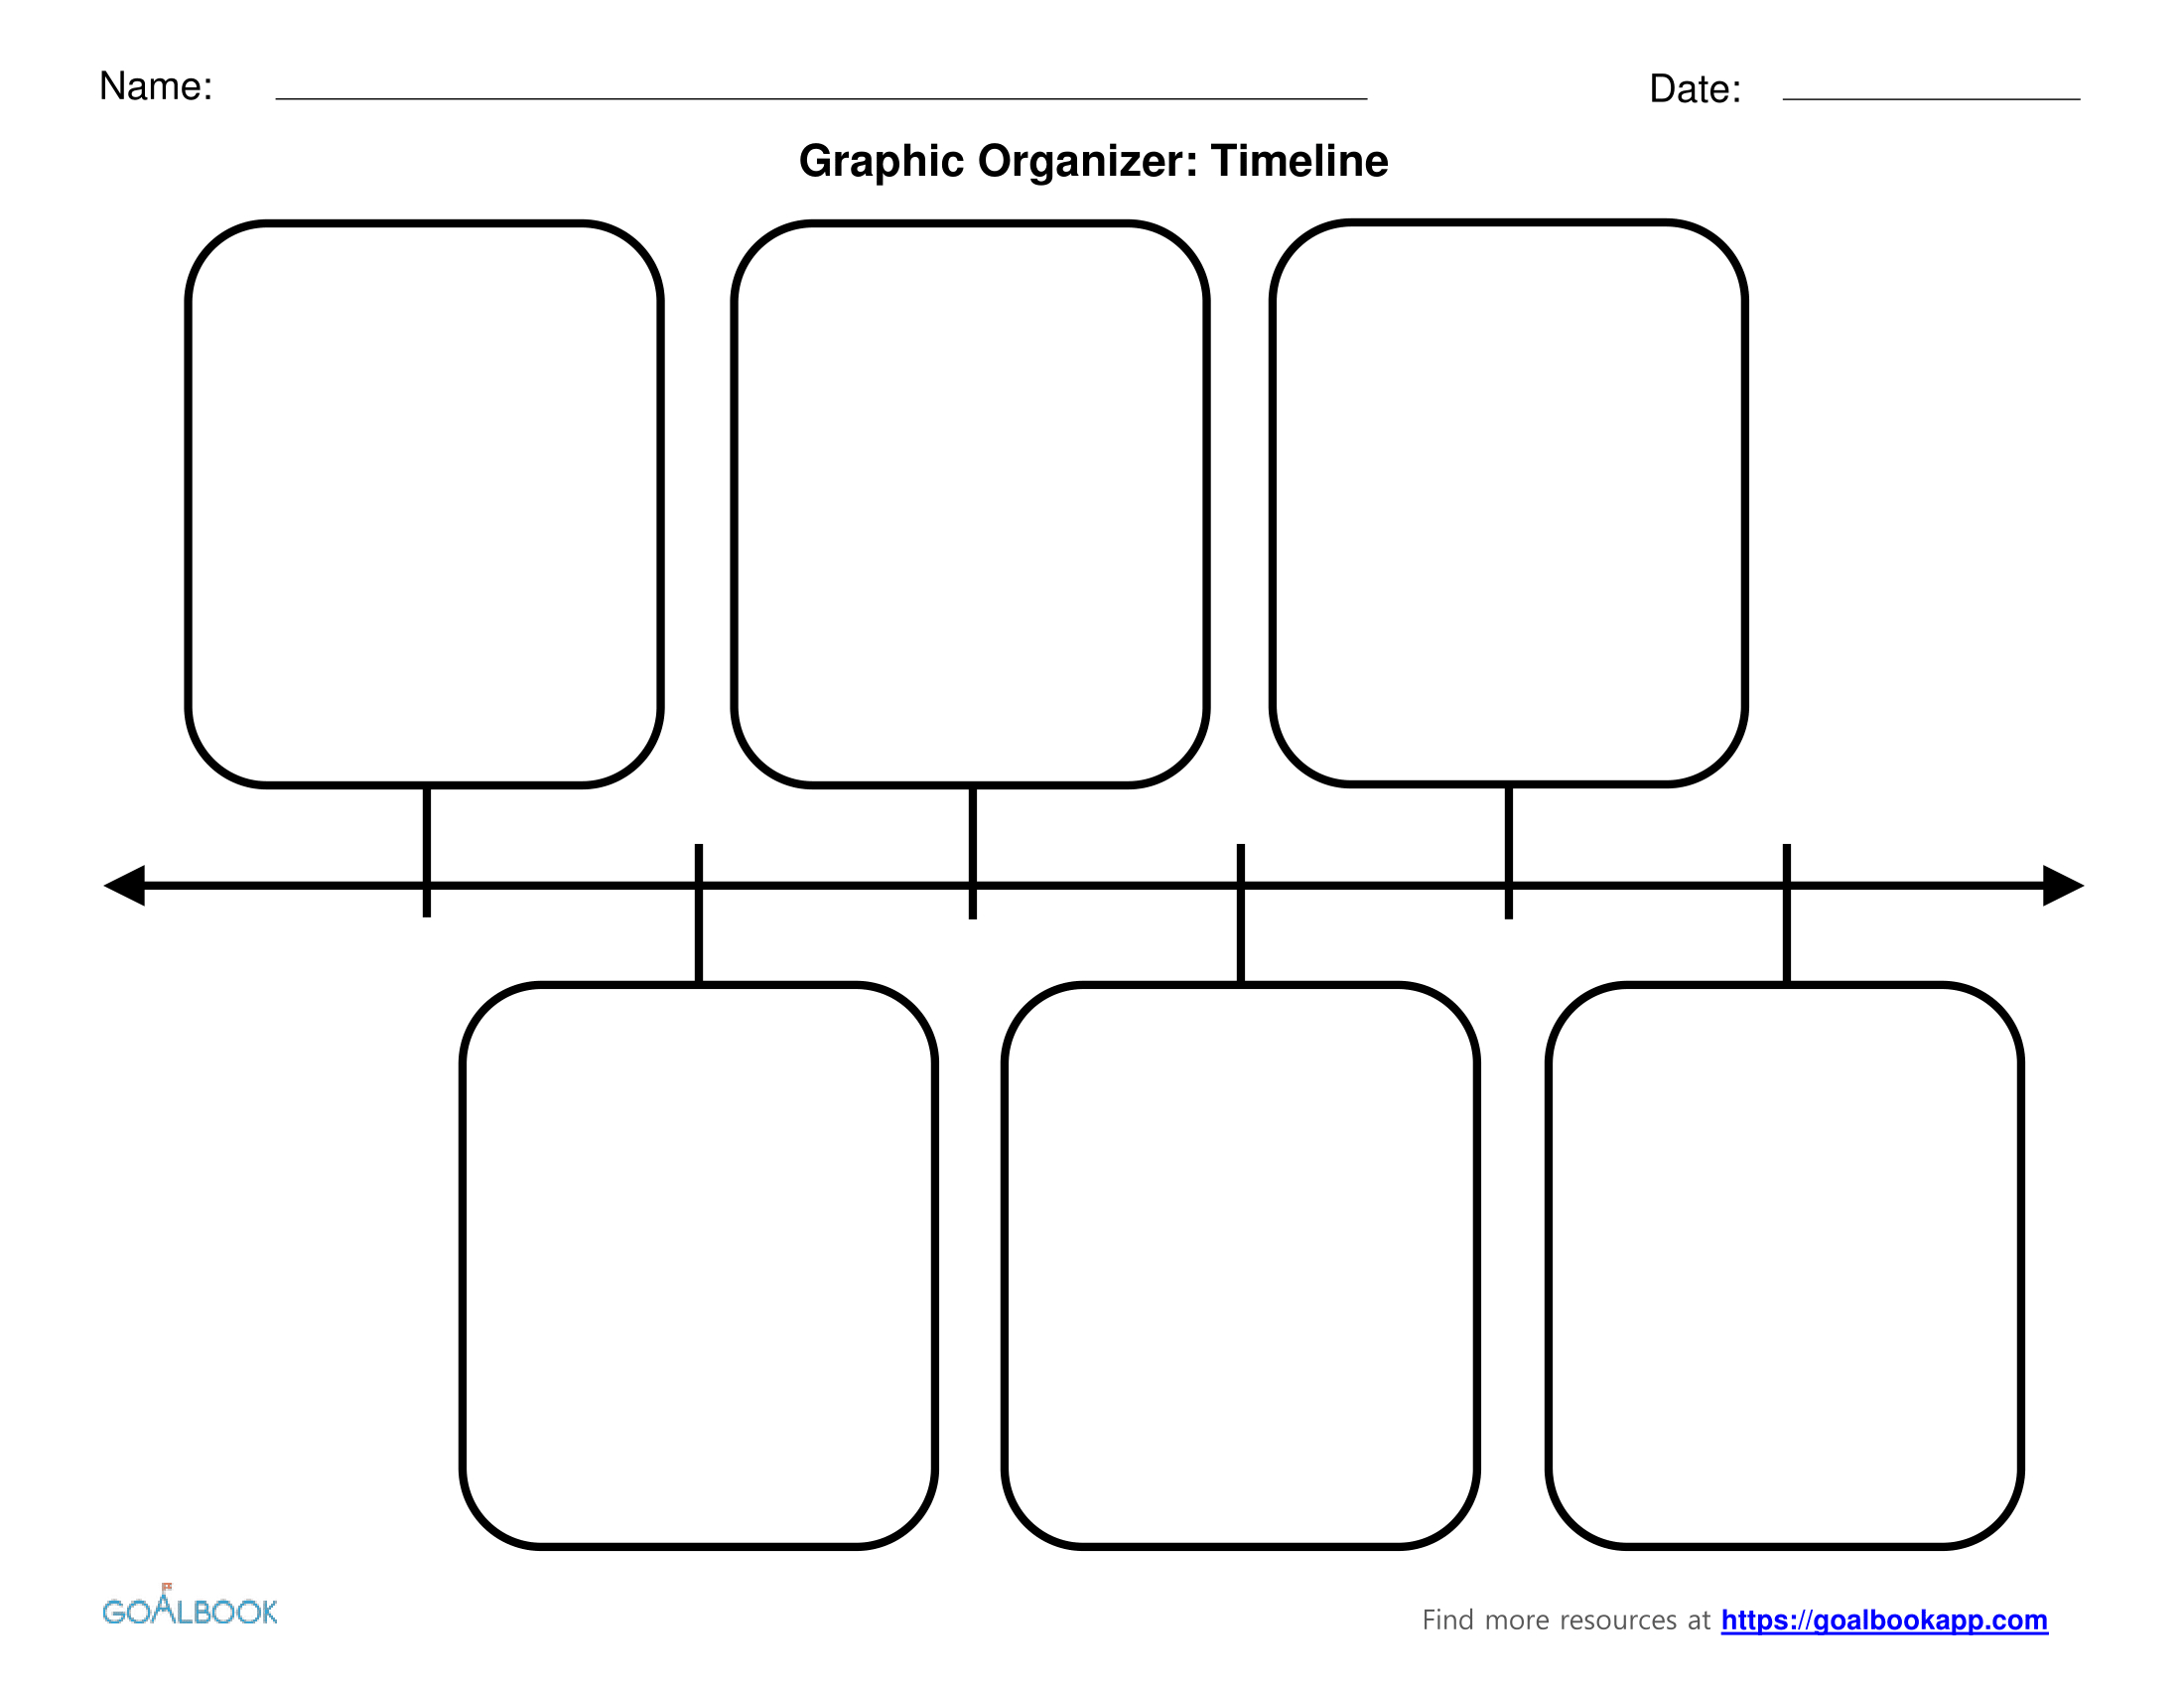 Graphic Organizers | Udl Strategies - Goalbook Toolkit - Free Printable Sequence Of Events Graphic Organizer